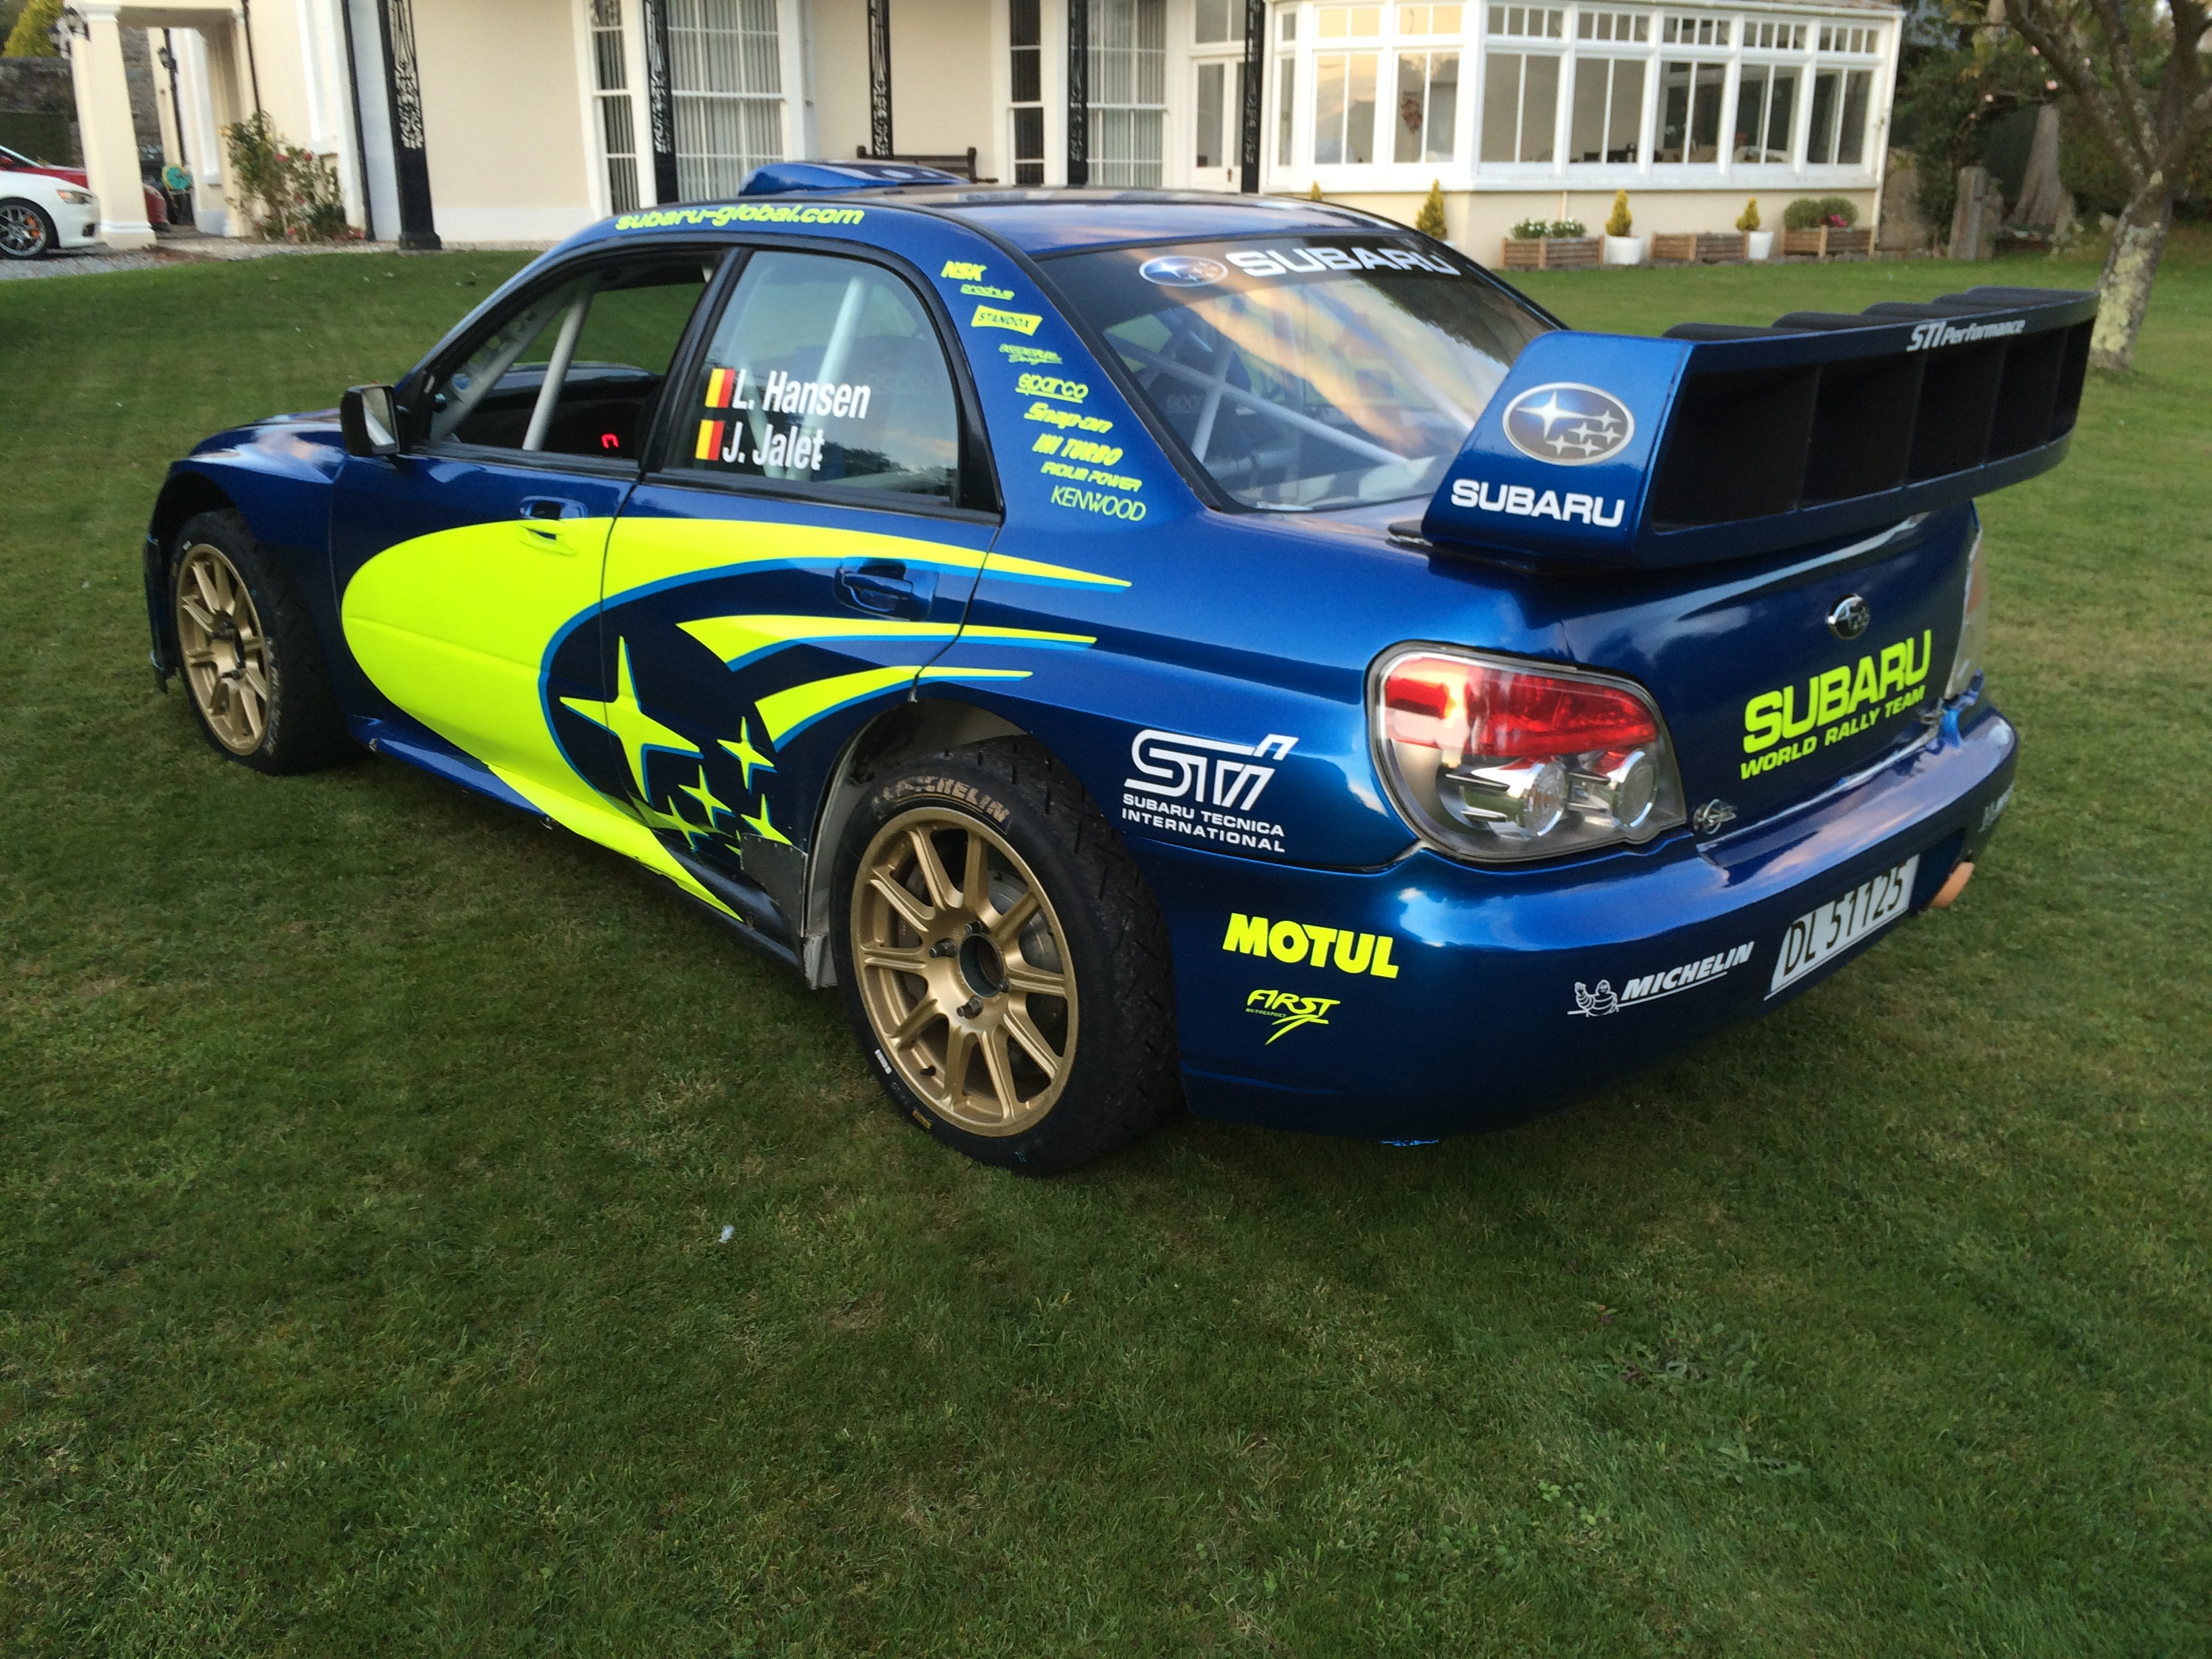 Subaru WRC for sale... A Pension Alternative ?? - Motorsport Chat ...